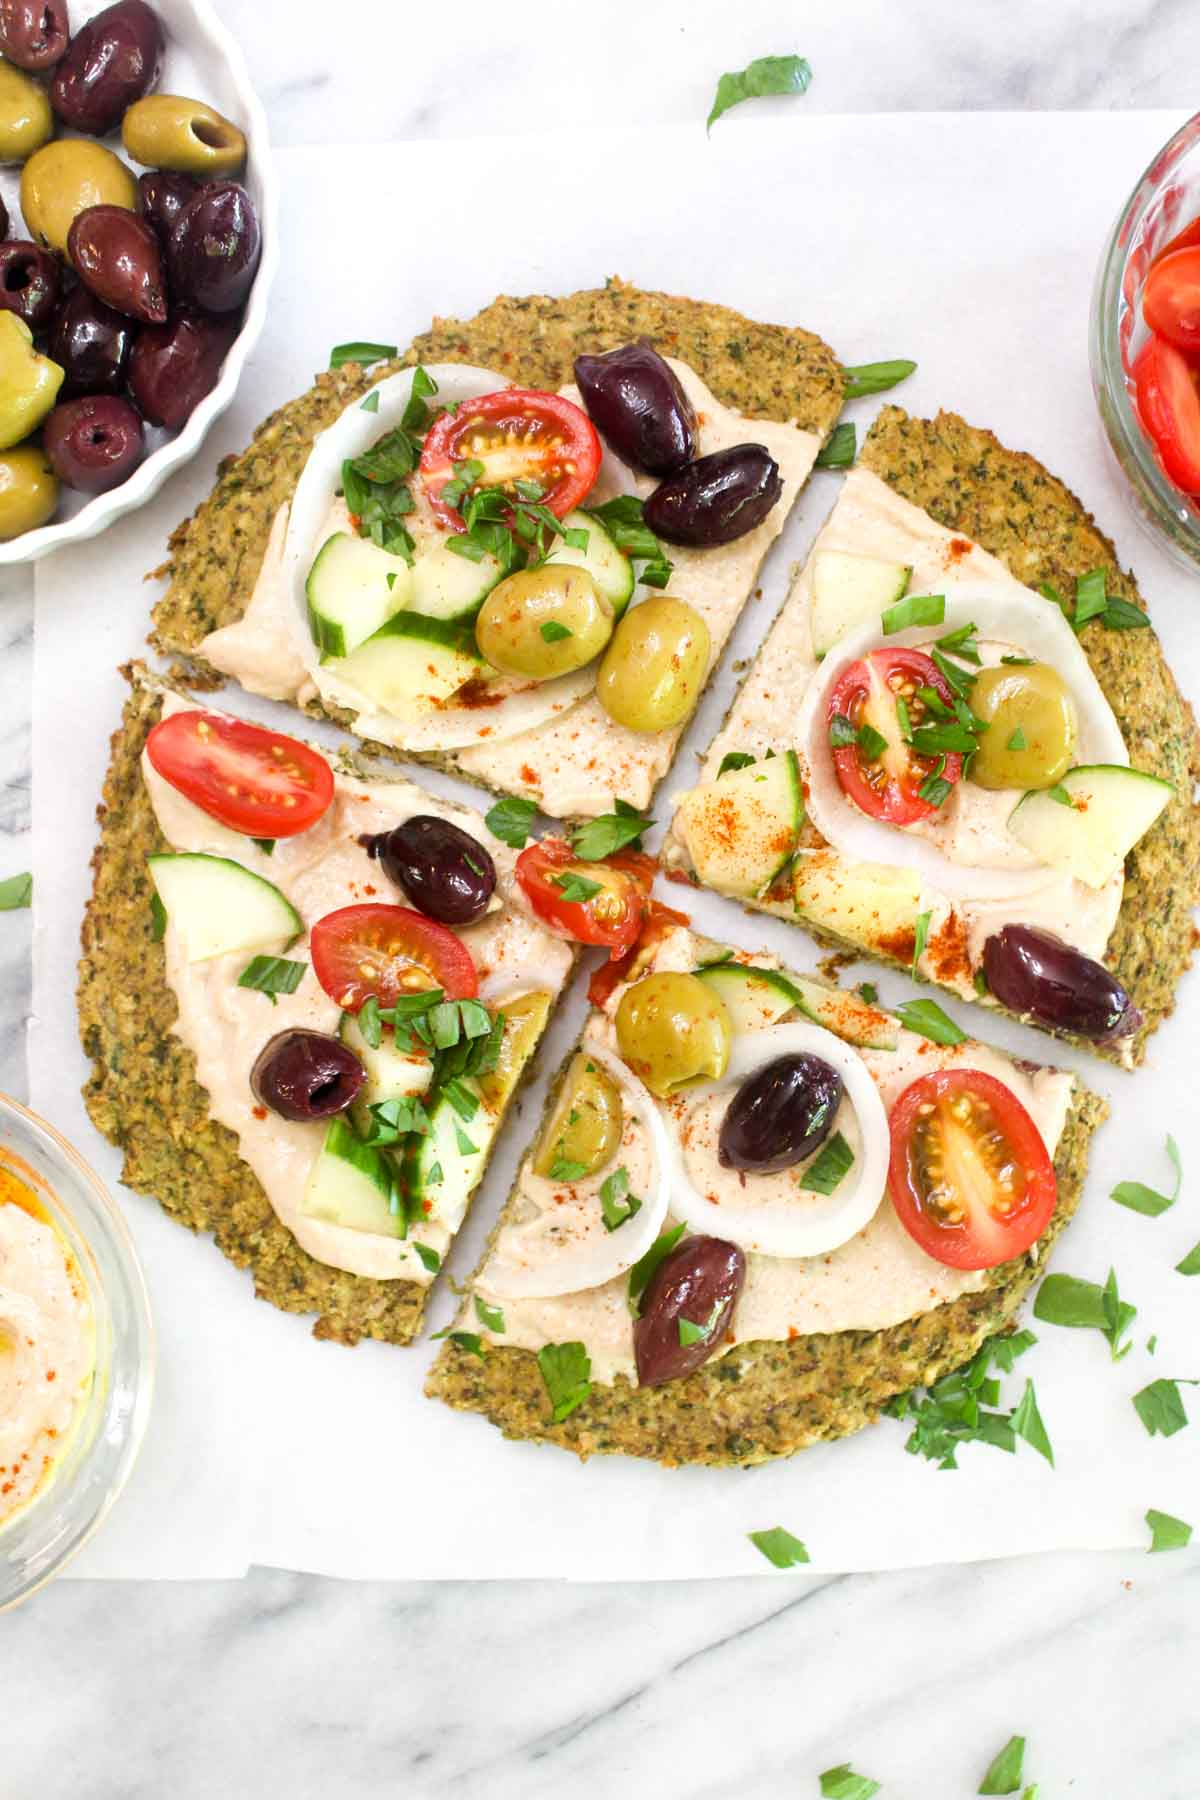 A falafel crust topped with hummus, olives, onion, tomatoes, and parsley cut into four slices.